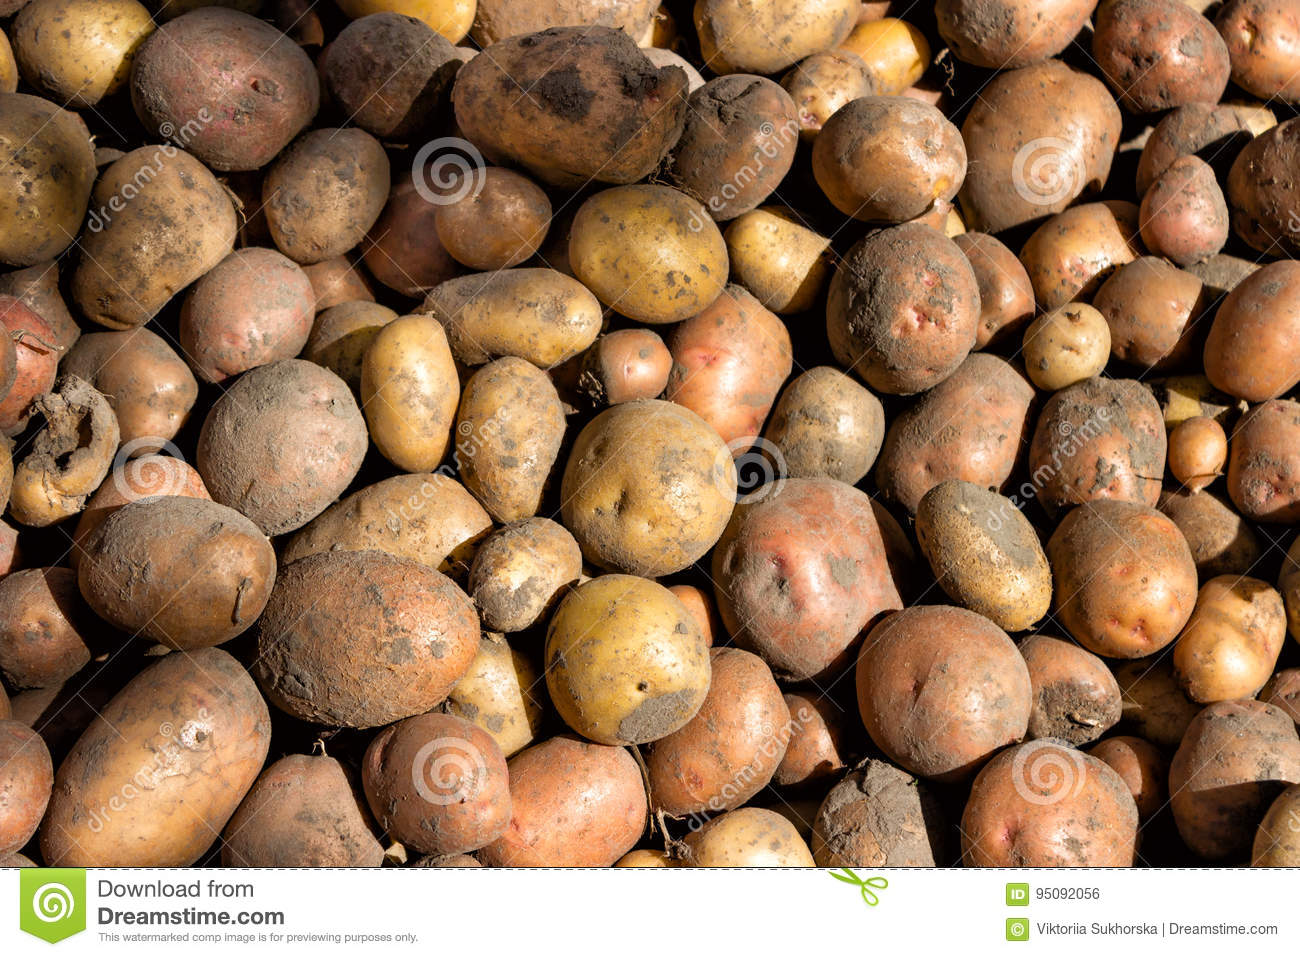 Potato tubers in bulk, harvested crop autumnal suffering